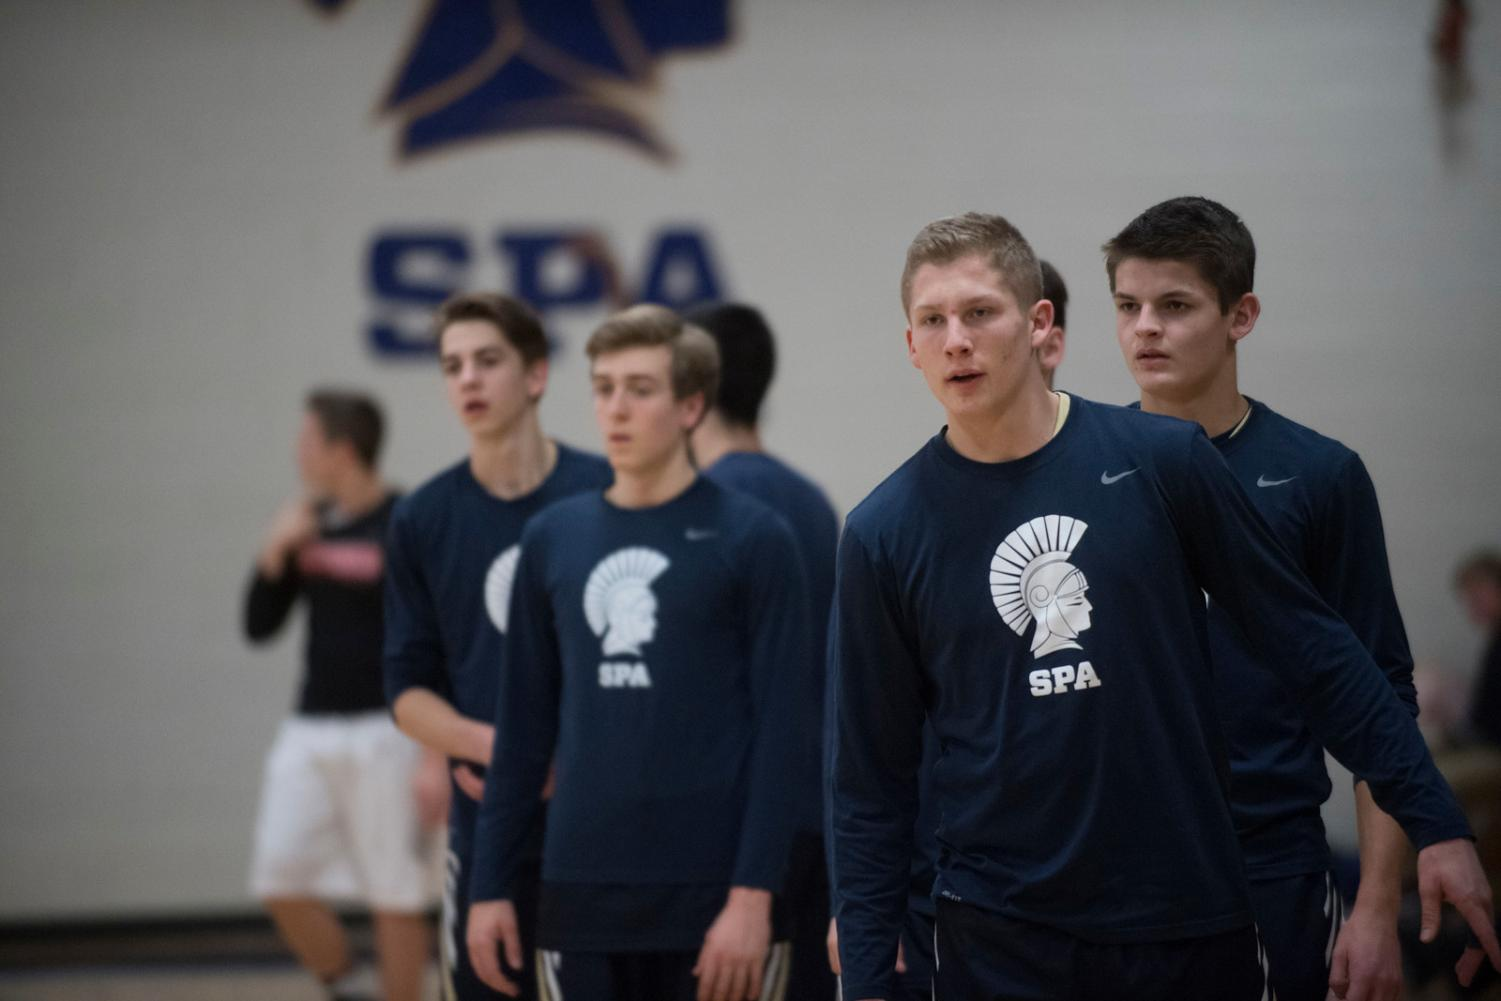 "SHOUT OUT. To get through a long season, the boys basketball team bonds on and off the court. ""Just spending so much time with my best friends is what makes the season so much fun,"" captain Gus Grunau said."